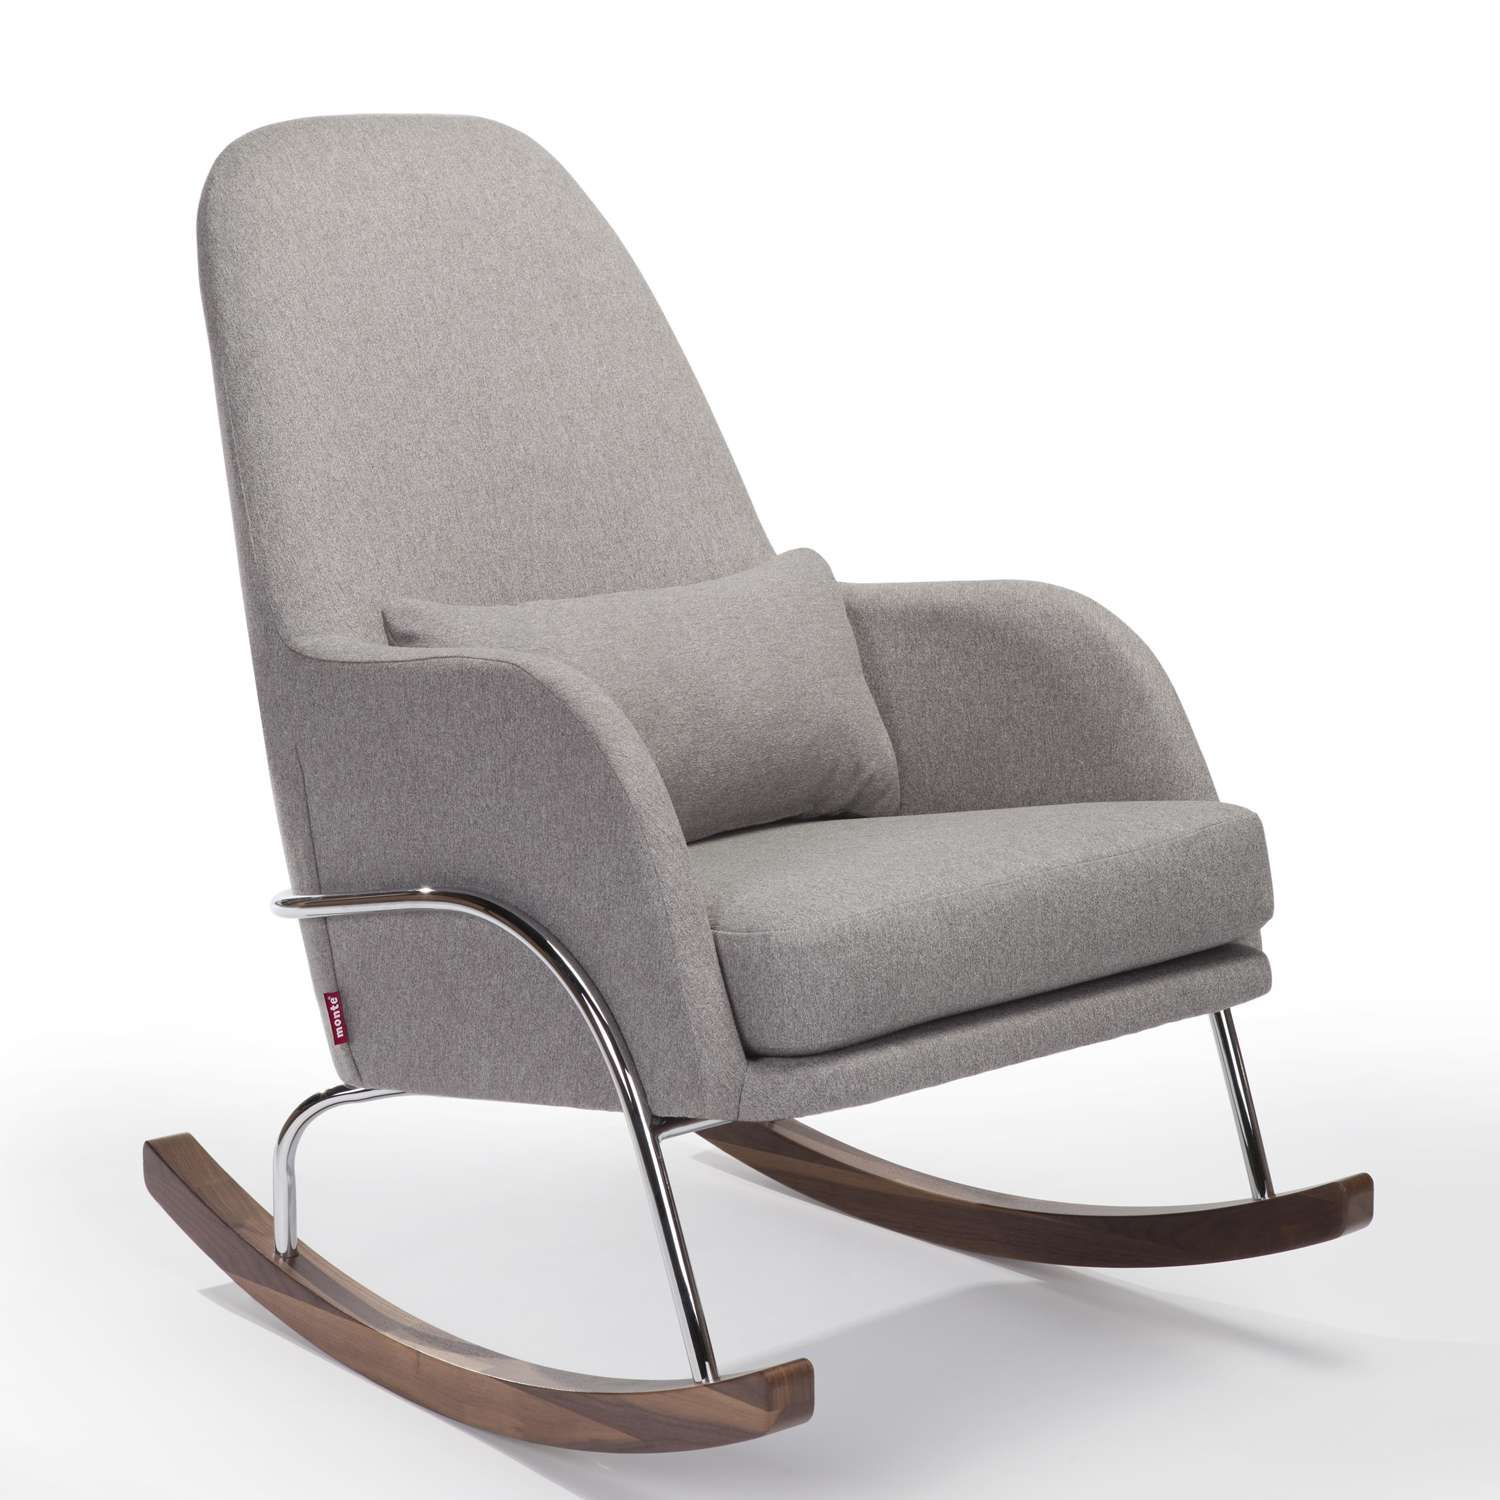 Jackson Rocker Glider rocking chair, Rocking chair